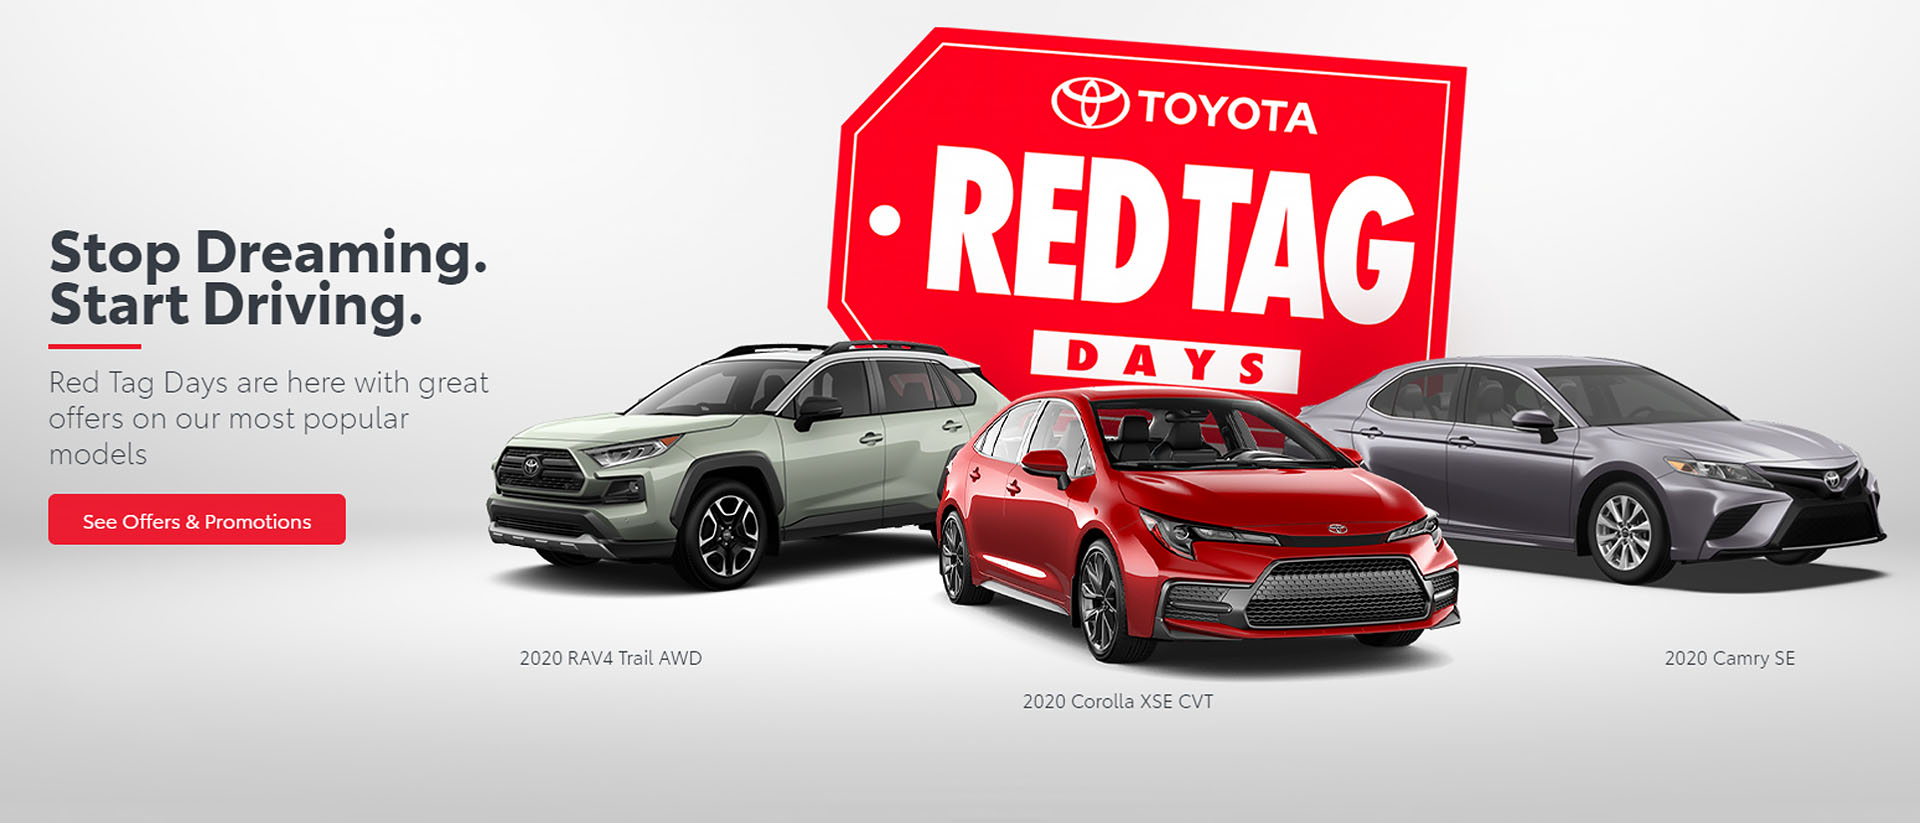 Toyota National August 2020 Offer 21x9